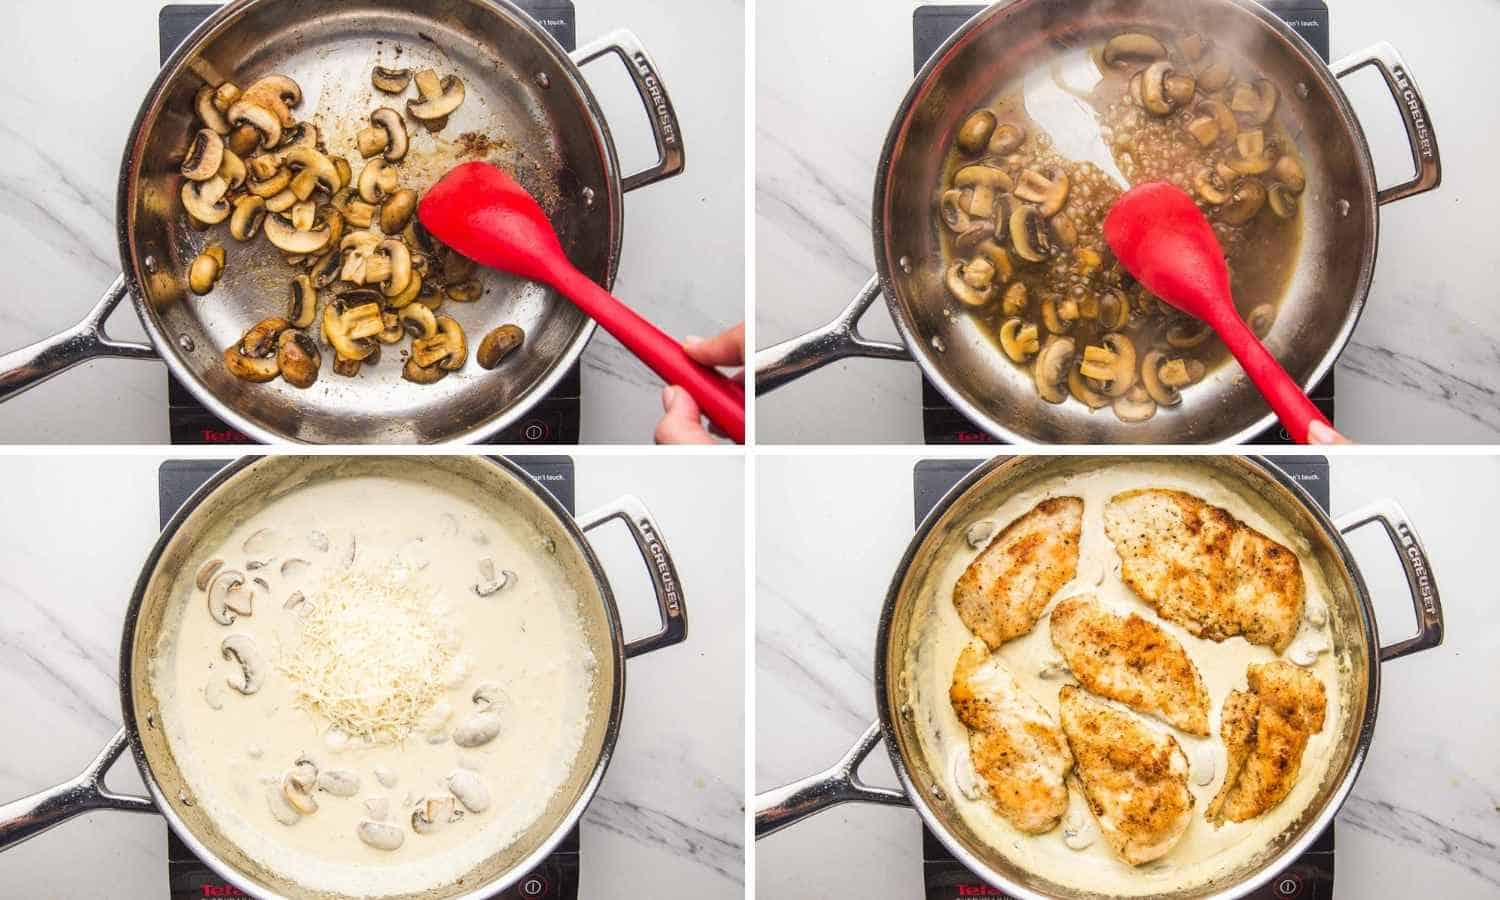 Collage of four images showing how to saute the mushrooms and make cream mushroom sauce for the chicken